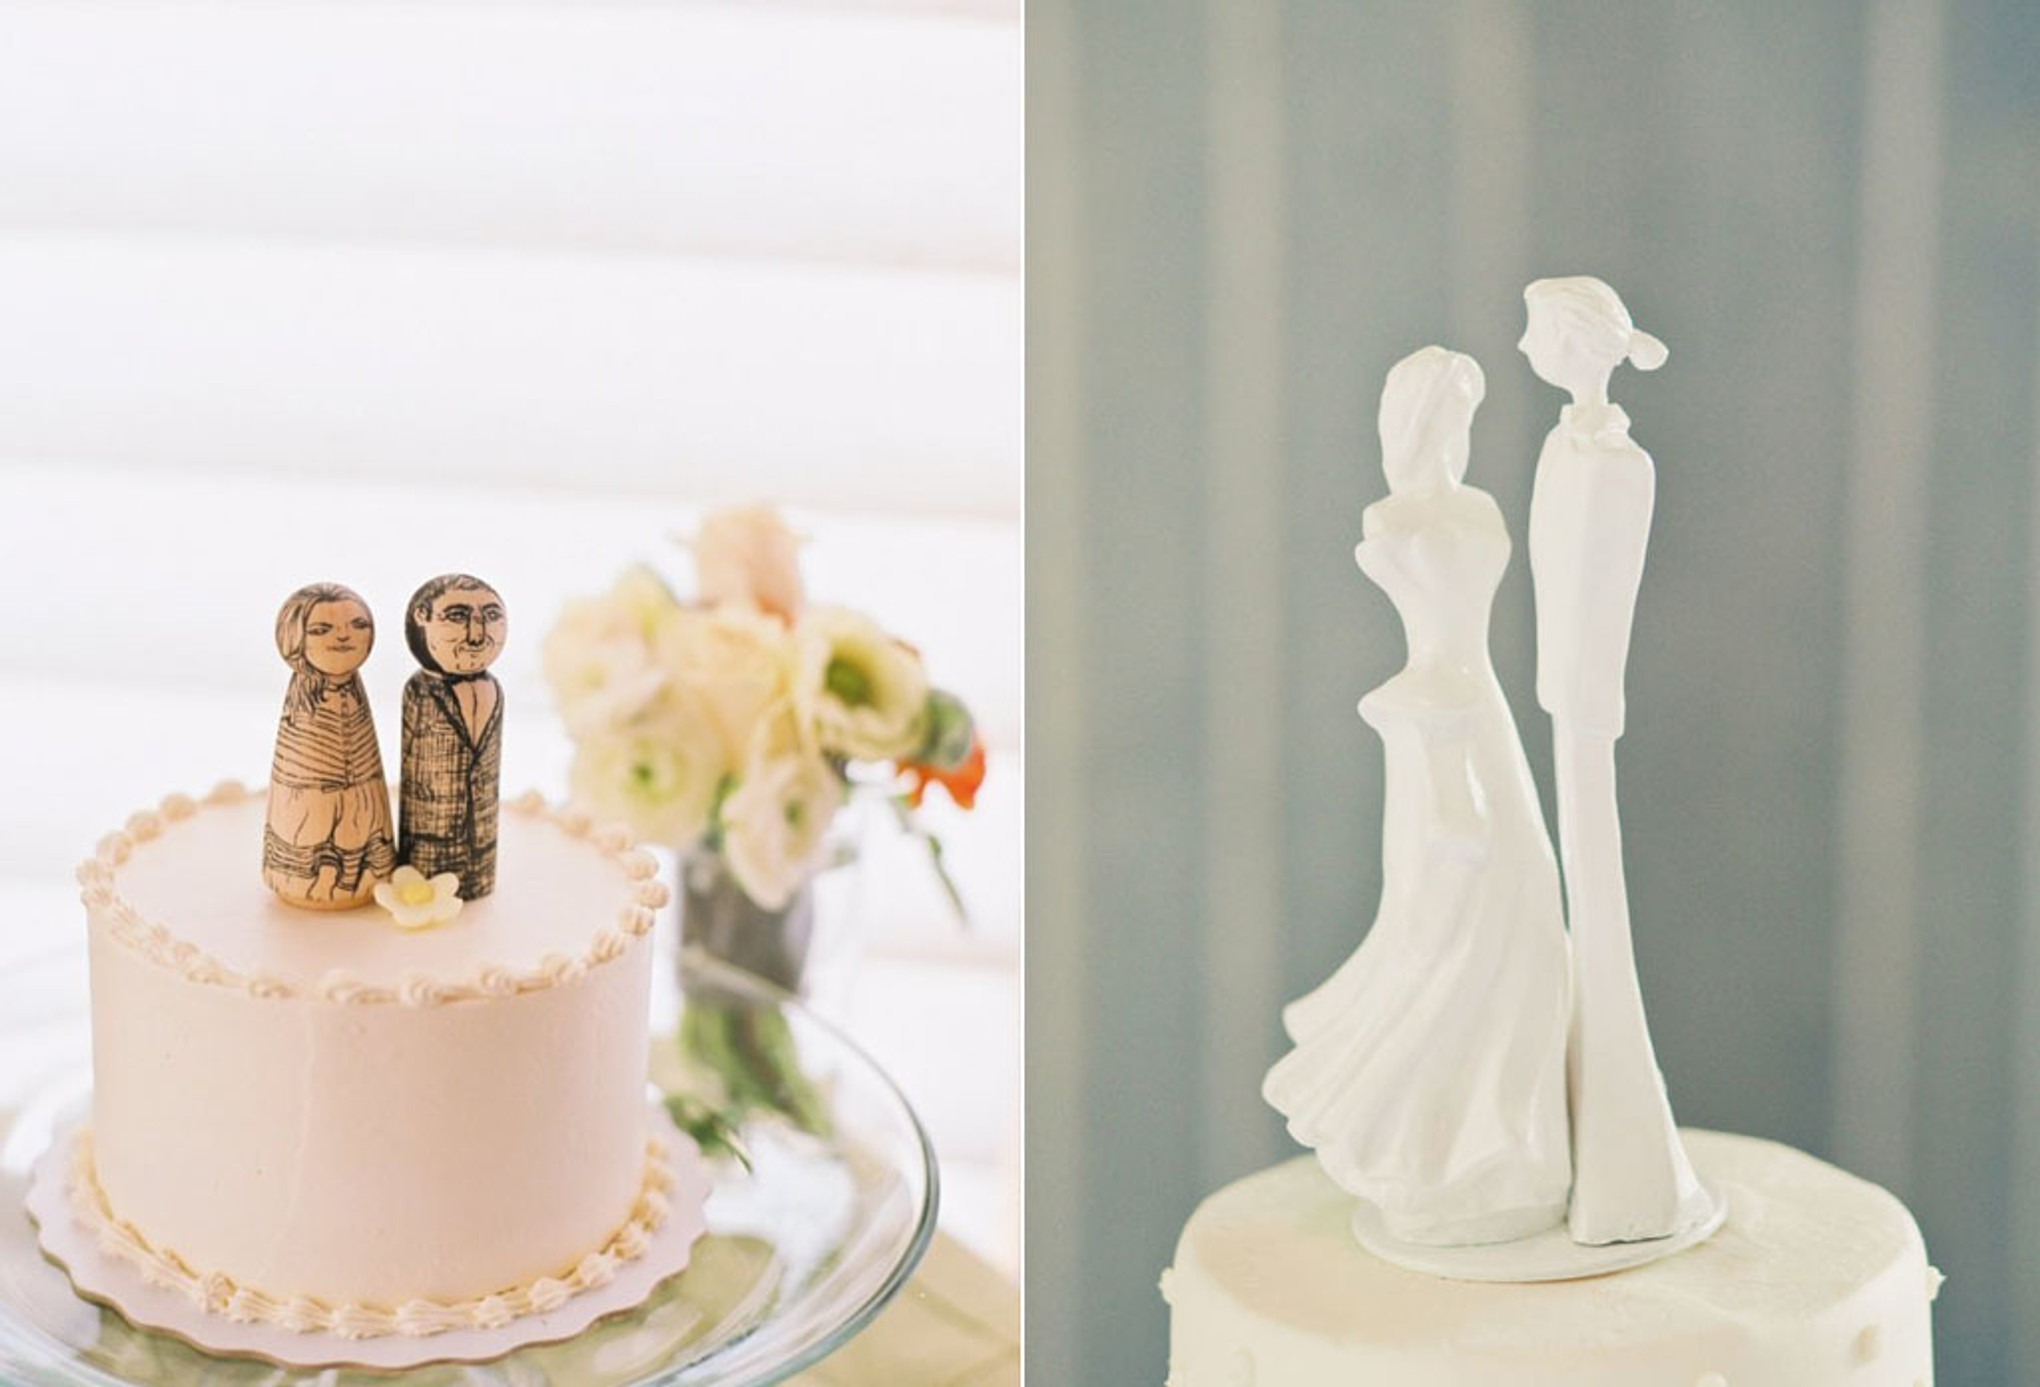 23 delightful cake topper ideas for your wedding